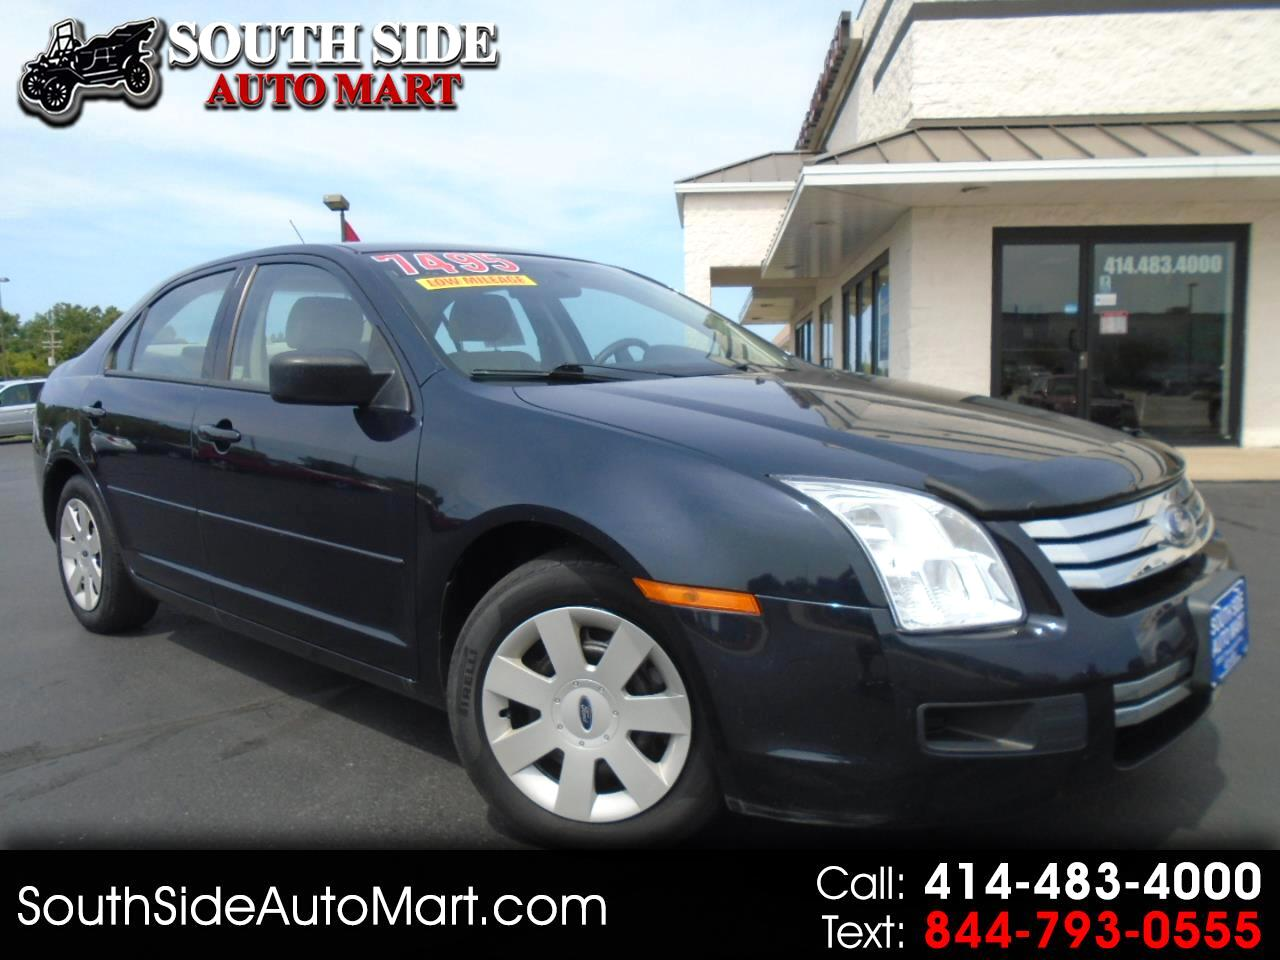 Ford Fusion 4dr Sdn I4 S FWD 2008